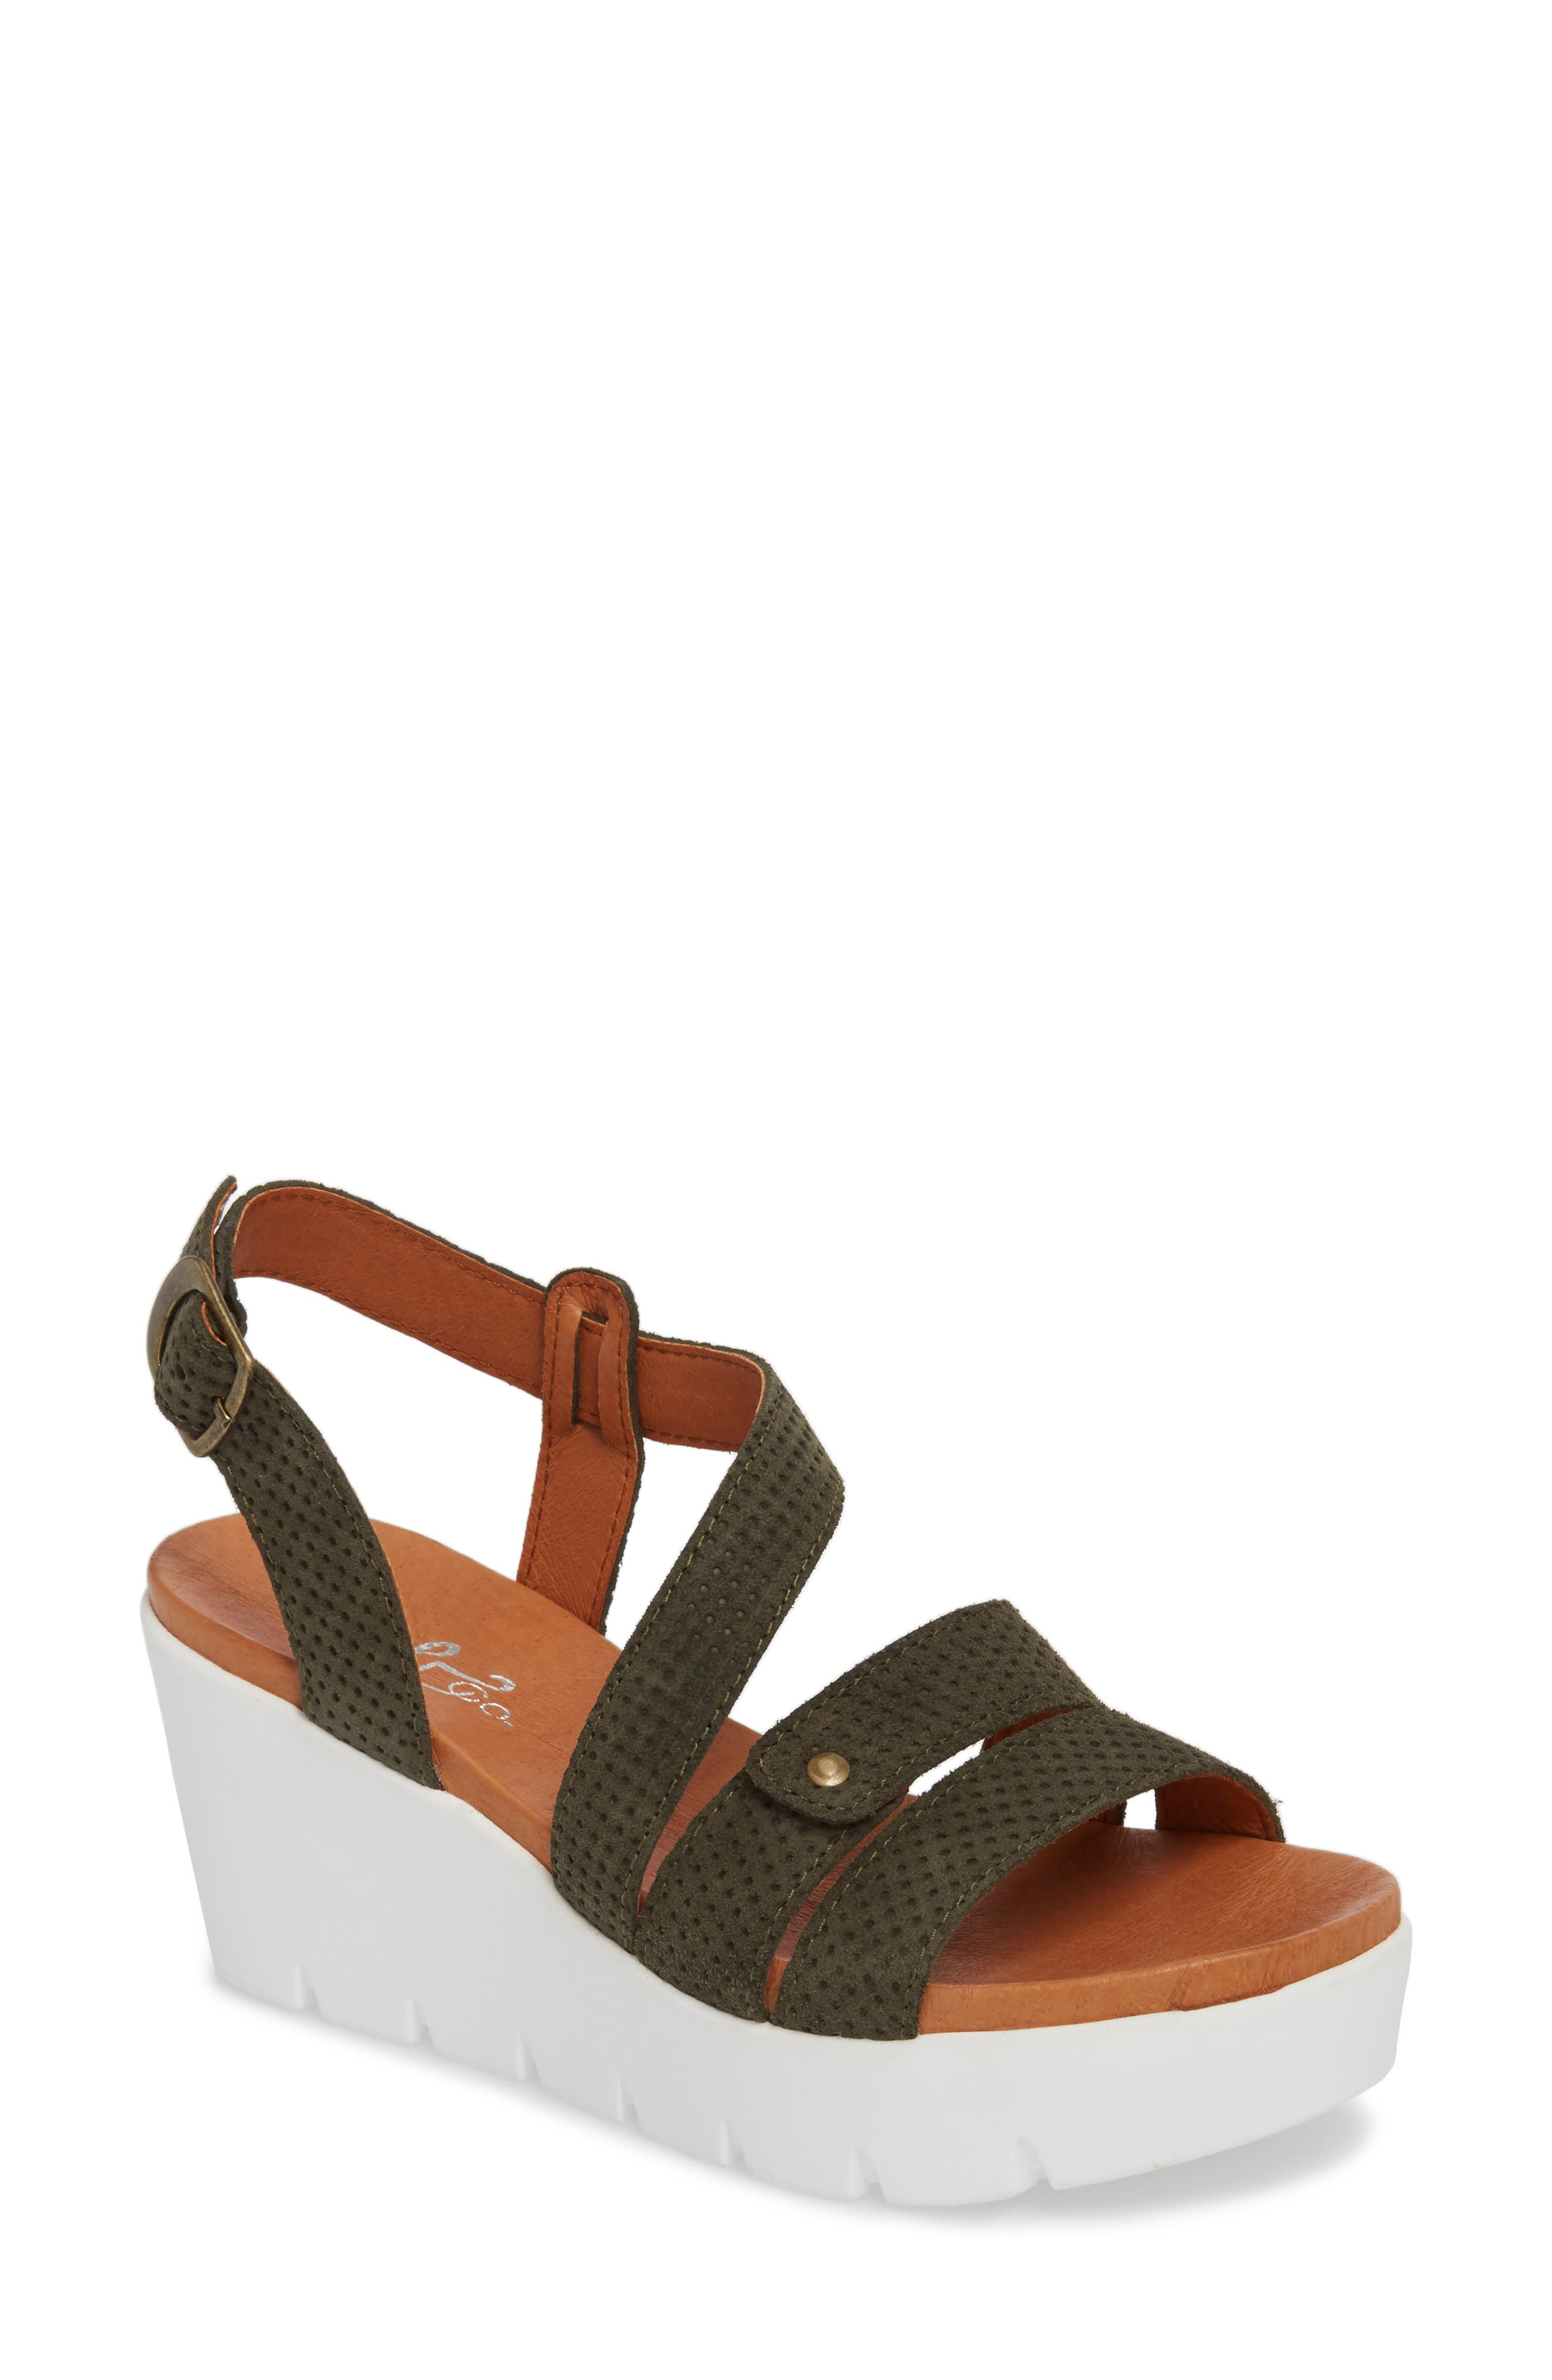 Sierra Platform Wedge Sandal,                             Main thumbnail 1, color,                             MINT LEATHER